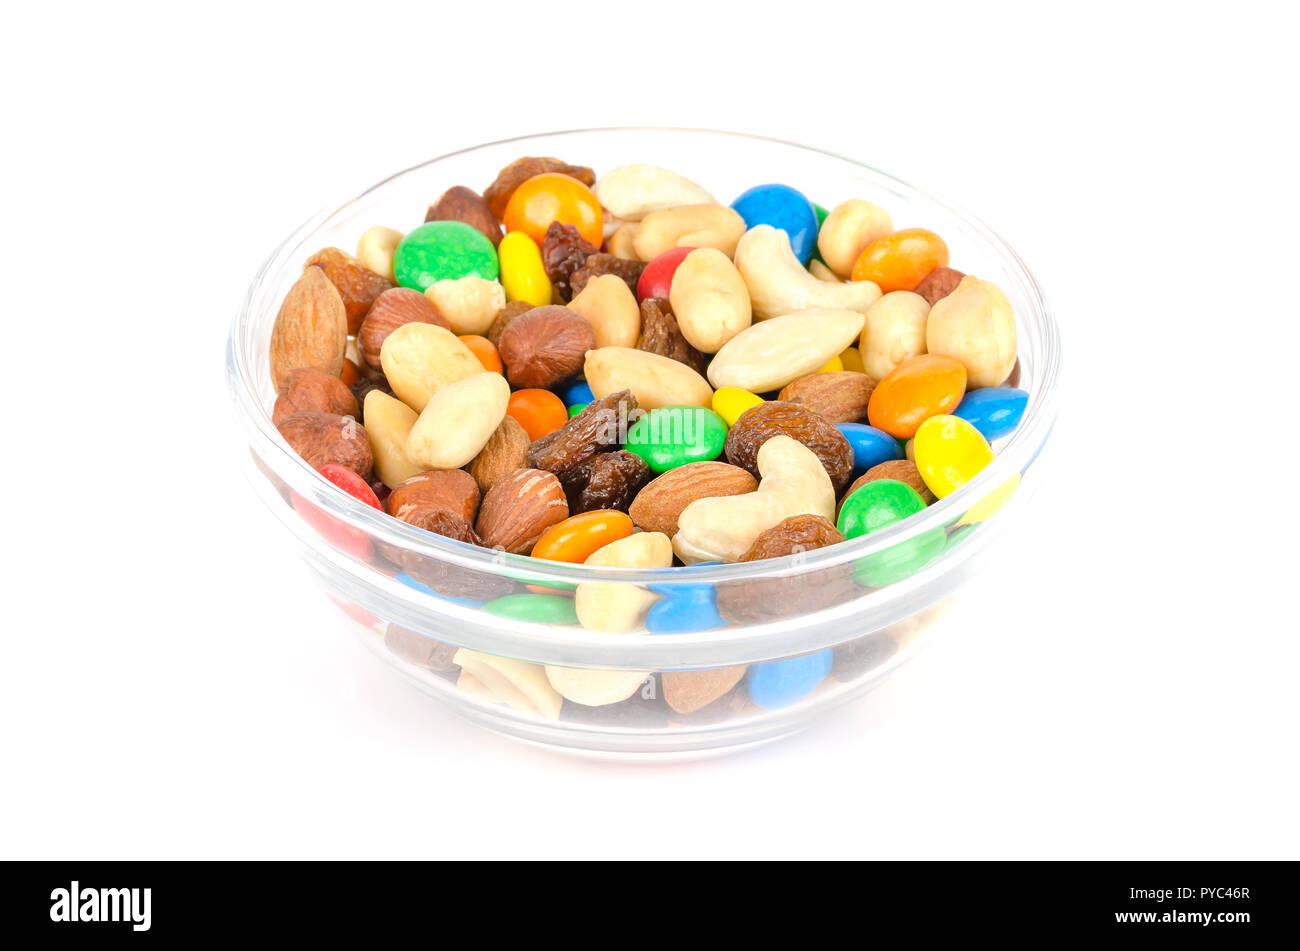 Trail mix in glass bowl. Snack mix. Almonds, cashews, peanuts, hazelnuts, raisins and colorful chocolate candies. Food to be taken along hikes. - Stock Image